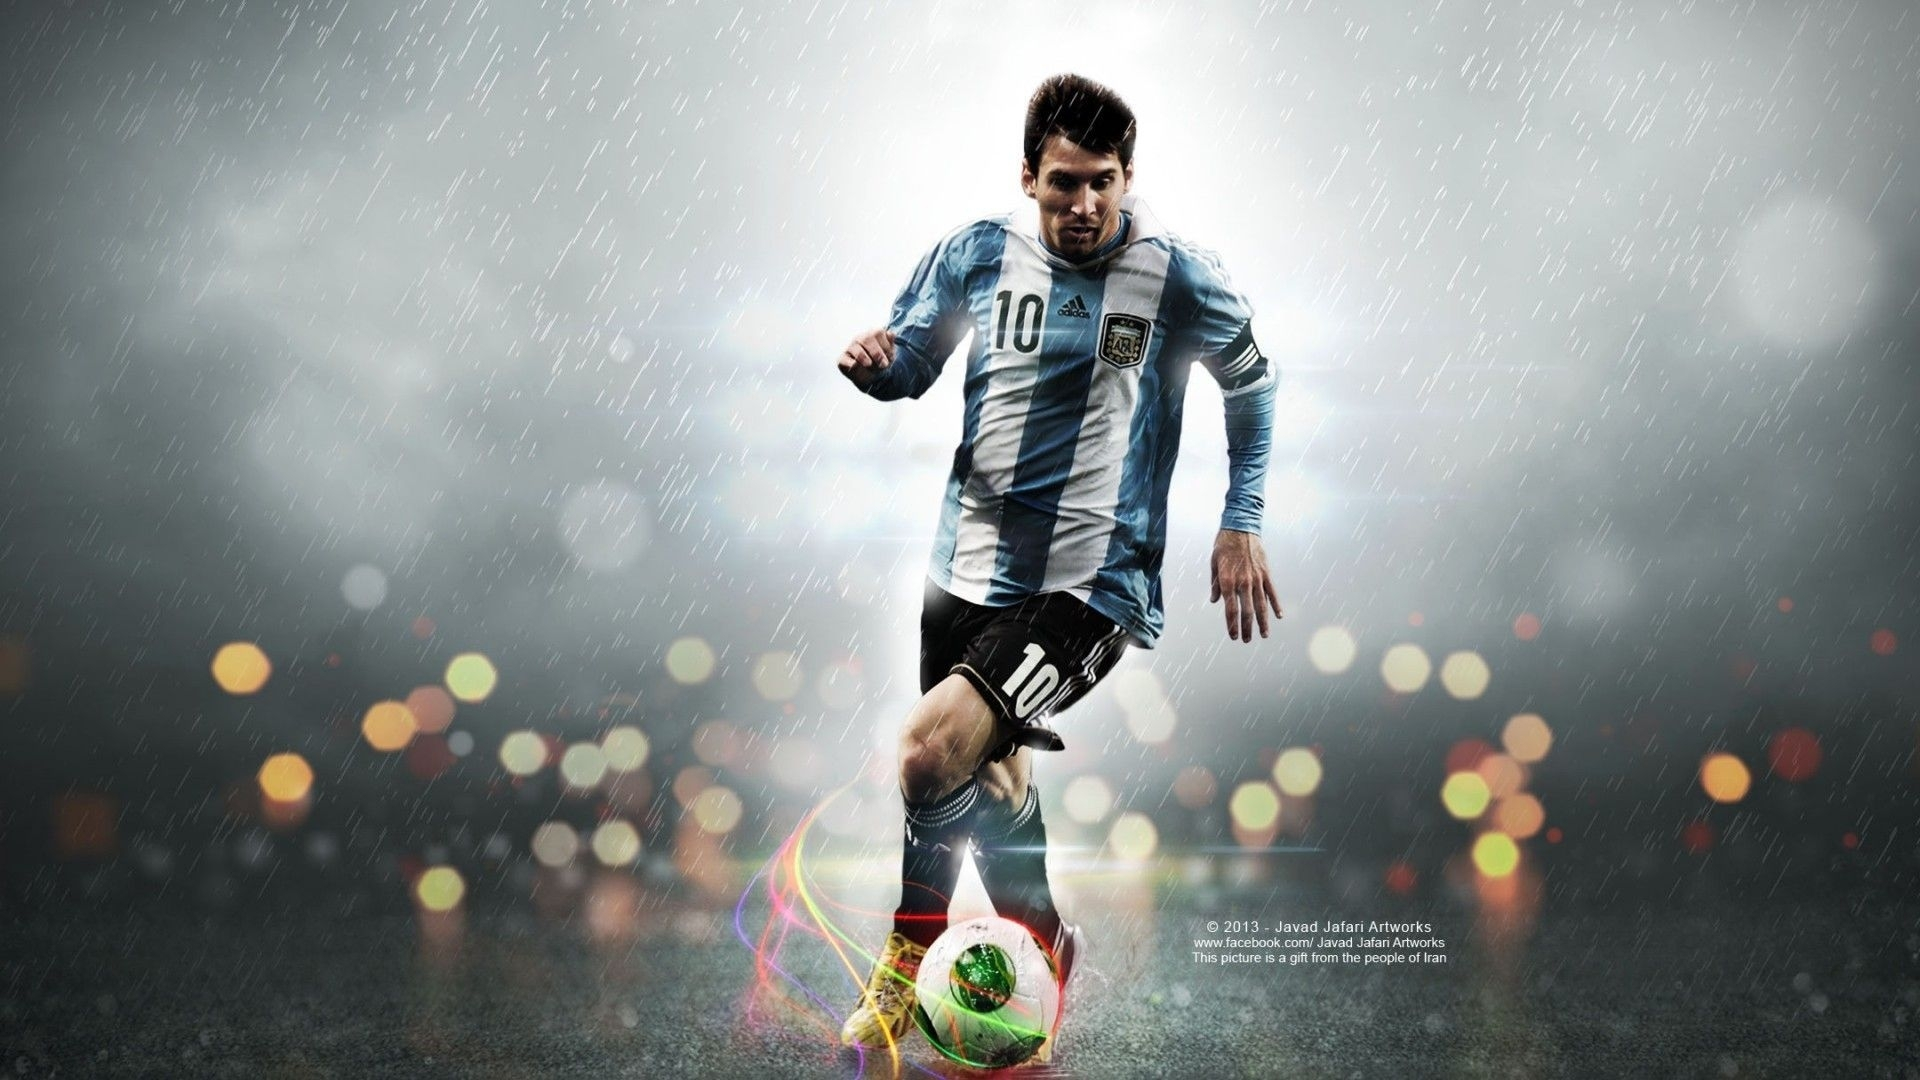 Title : awesome football wallpaper pictures in hd for download 1920×1200. Dimension : 1920 x 1080. File Type : JPG/JPEG